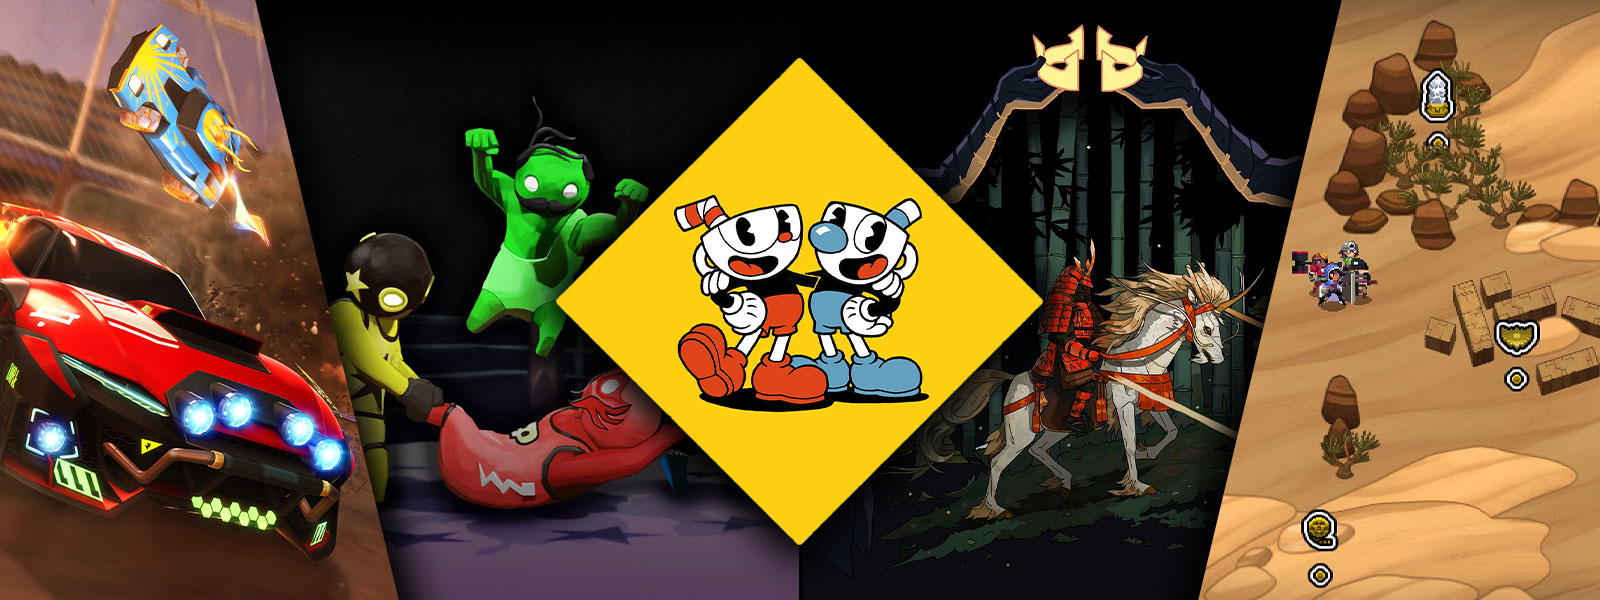 A collage of scenes and characters from Xbox One games on sale, including Cuphead, Rocket League, Gang Beasts, and Kingdom Two Crowns.